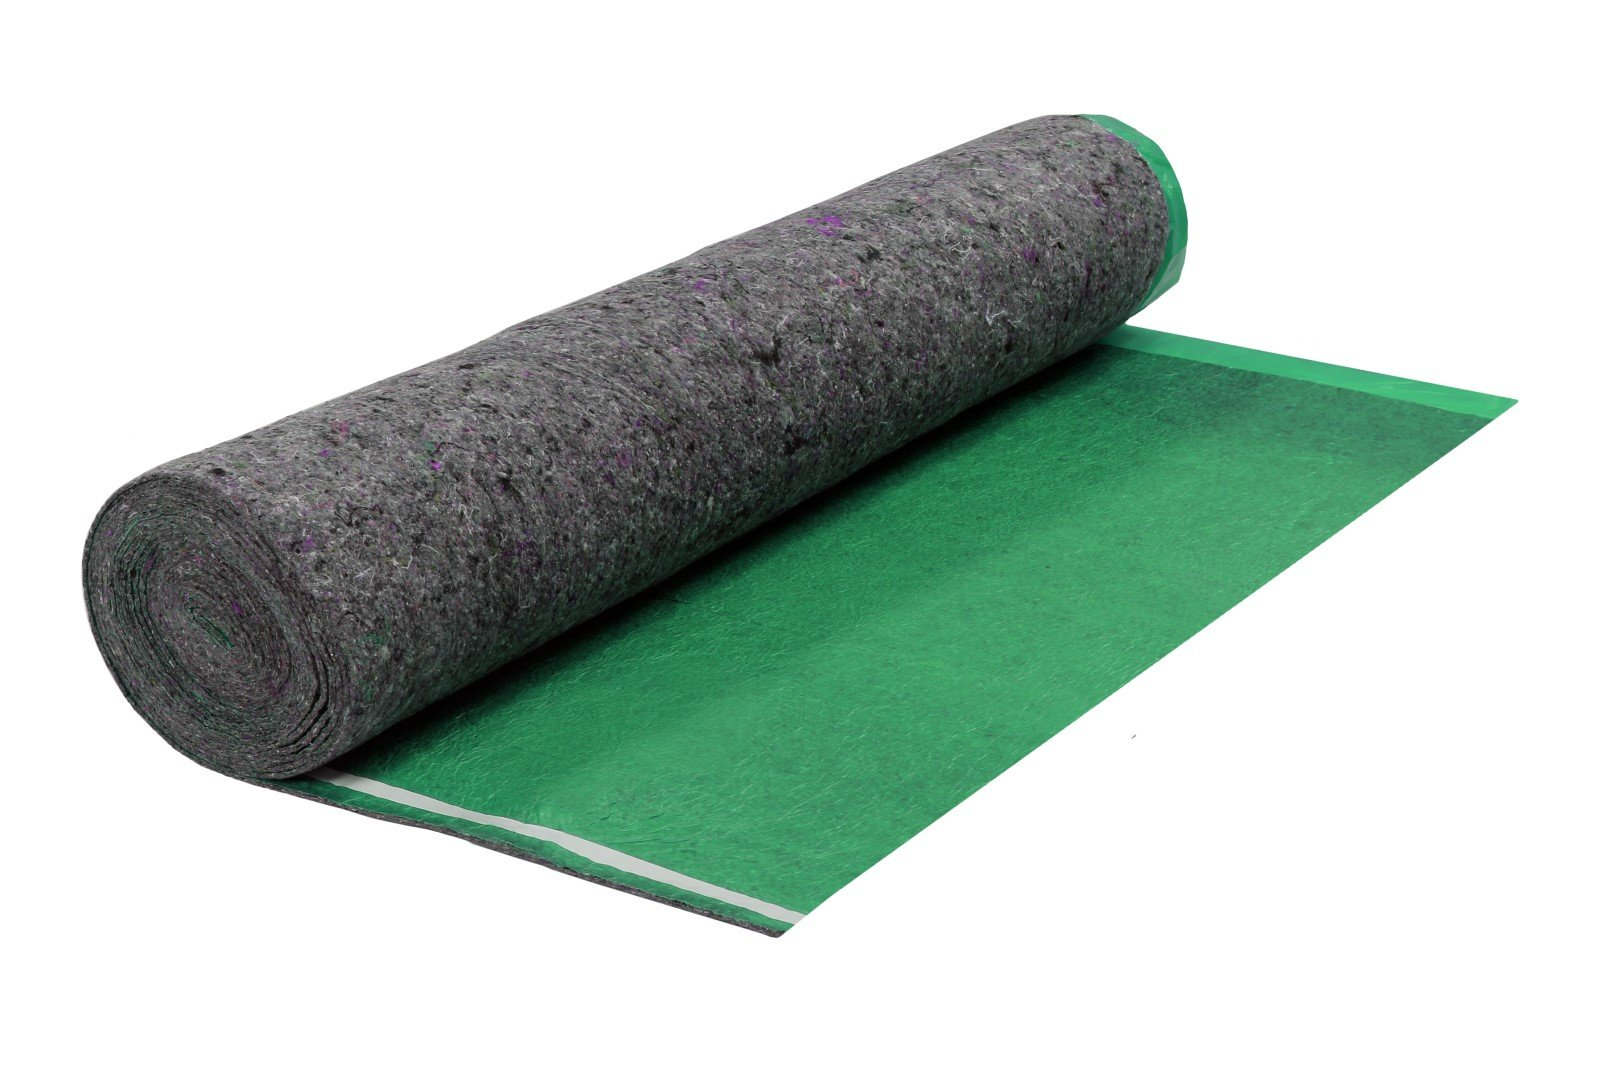 200SQFT 3.5MM AMERIQUE Super Quiet Walk Felt Underlayment Heavy Duty Padding with Vapor Barrier & Tape, Perfect for Hardwood, Bamboo, Floating Floors & Laminate, Bright Green, Pack of 2 by AMERIQUE (Image #1)